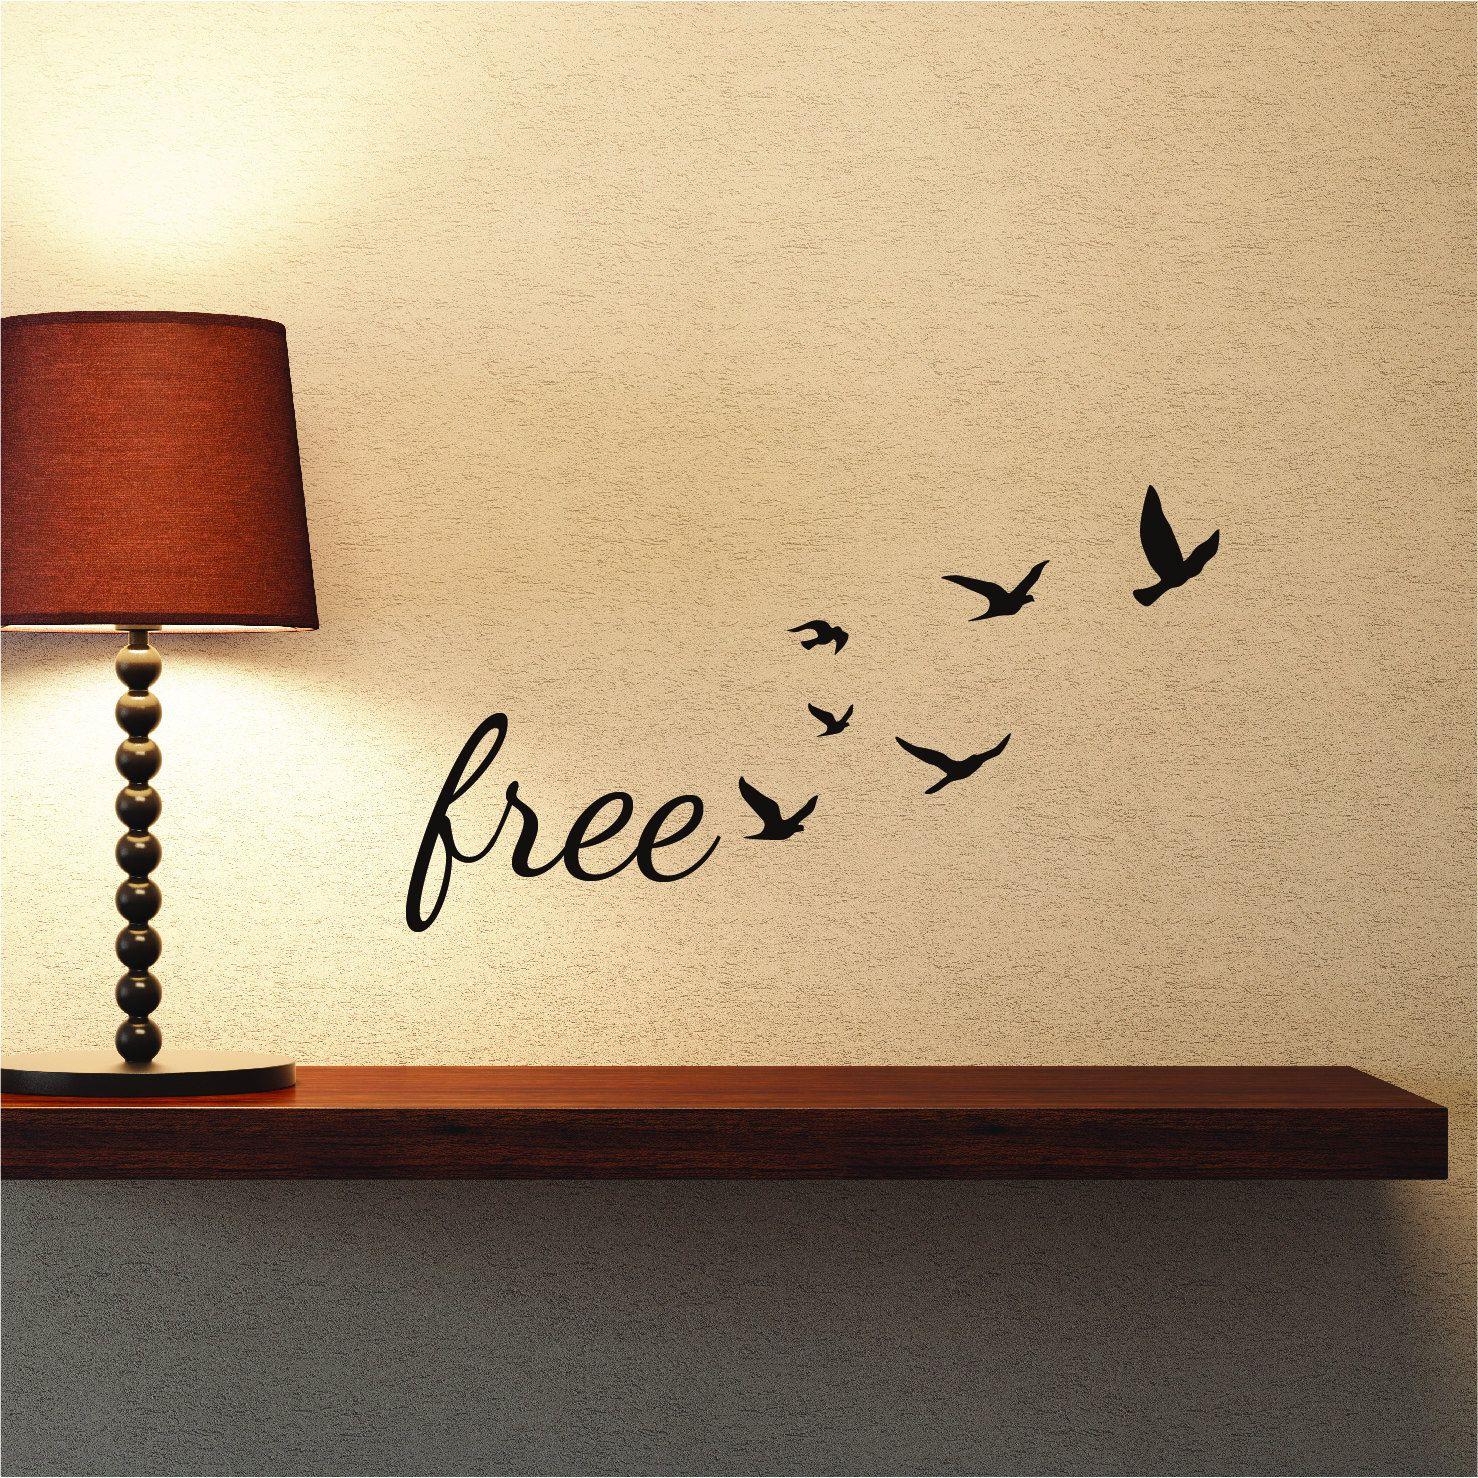 Freedom Wall Decal Quote with Flock of Flying Birds | Inspirational ...